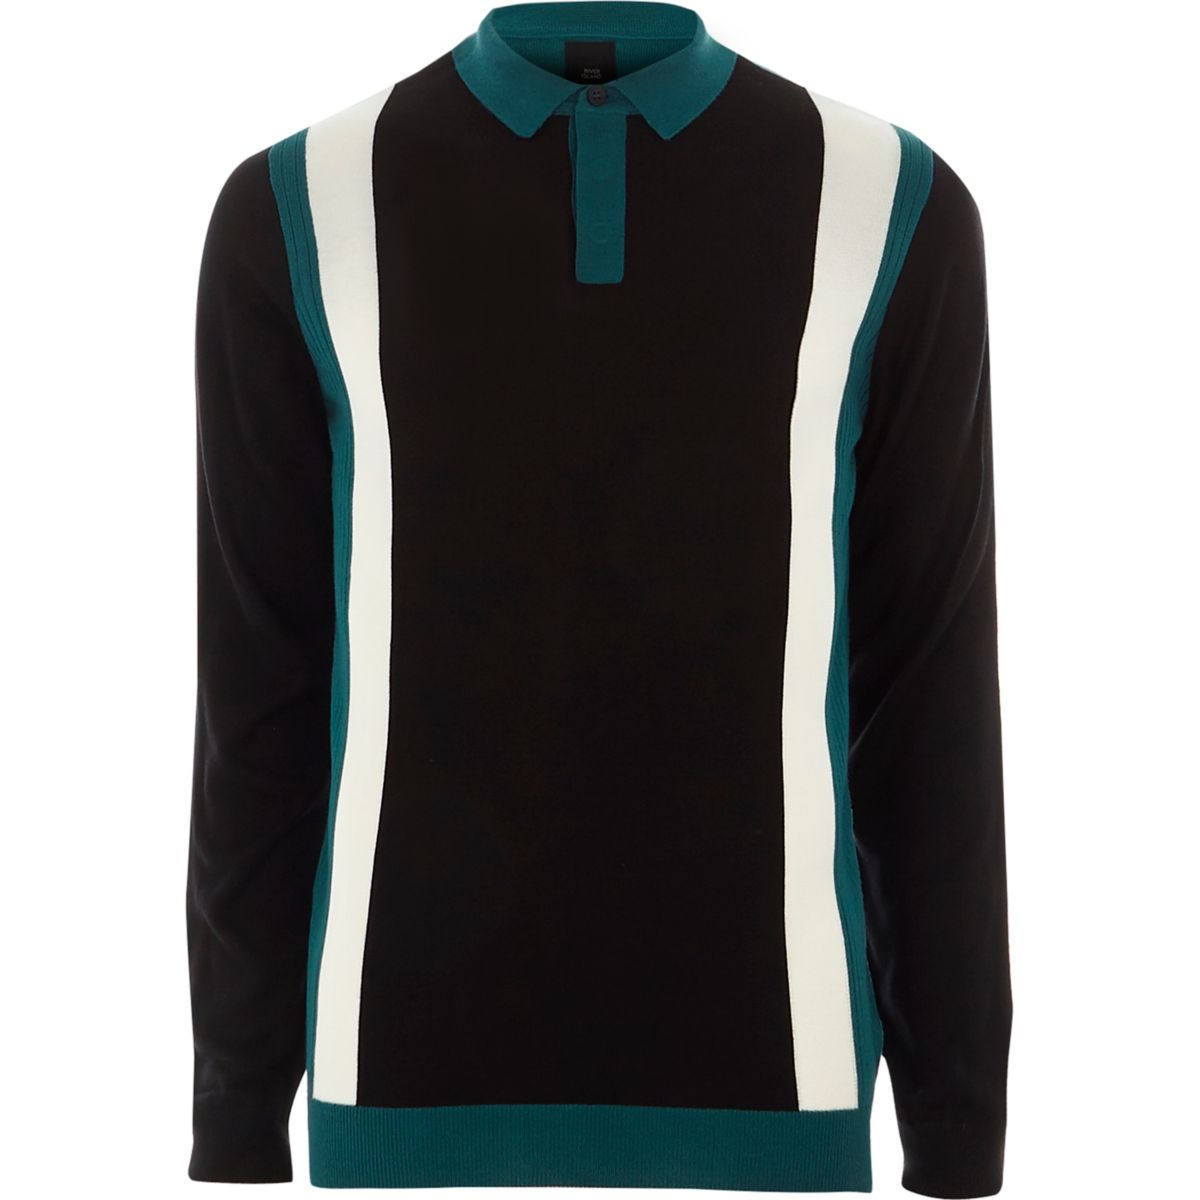 Blue color block slim fit knitted polo shirt